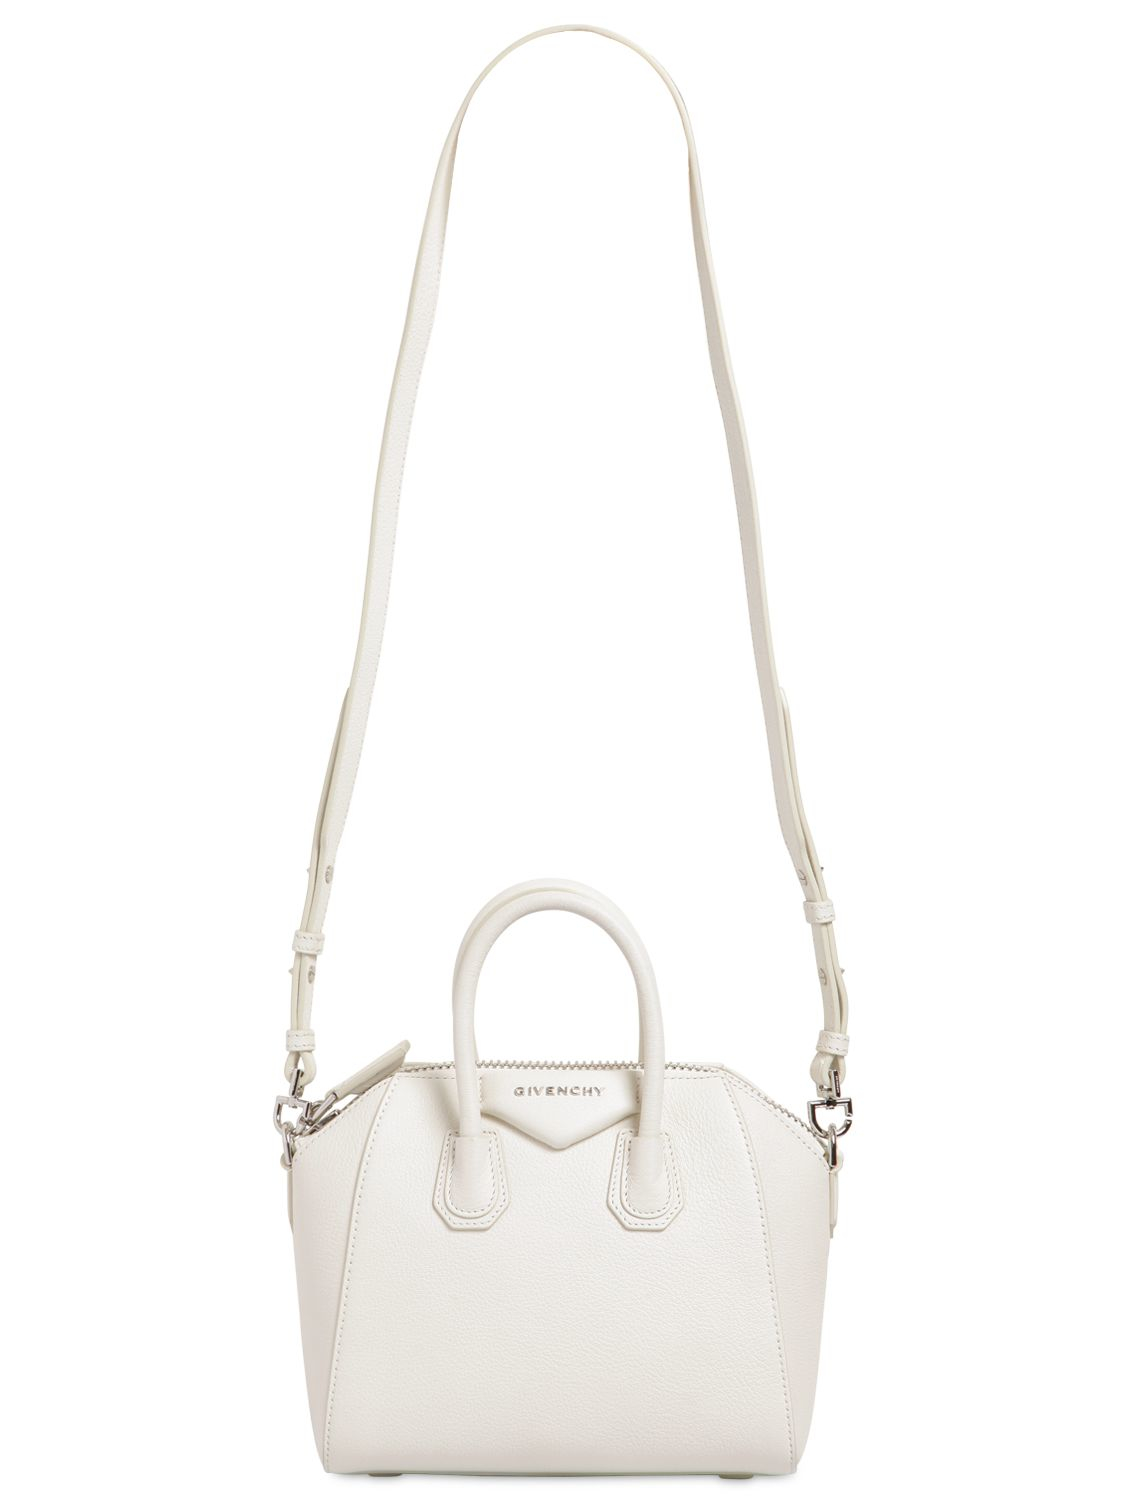 Lyst - Givenchy Mini Antigona Grained Leather Top Handle in White eed38fa66d9bd